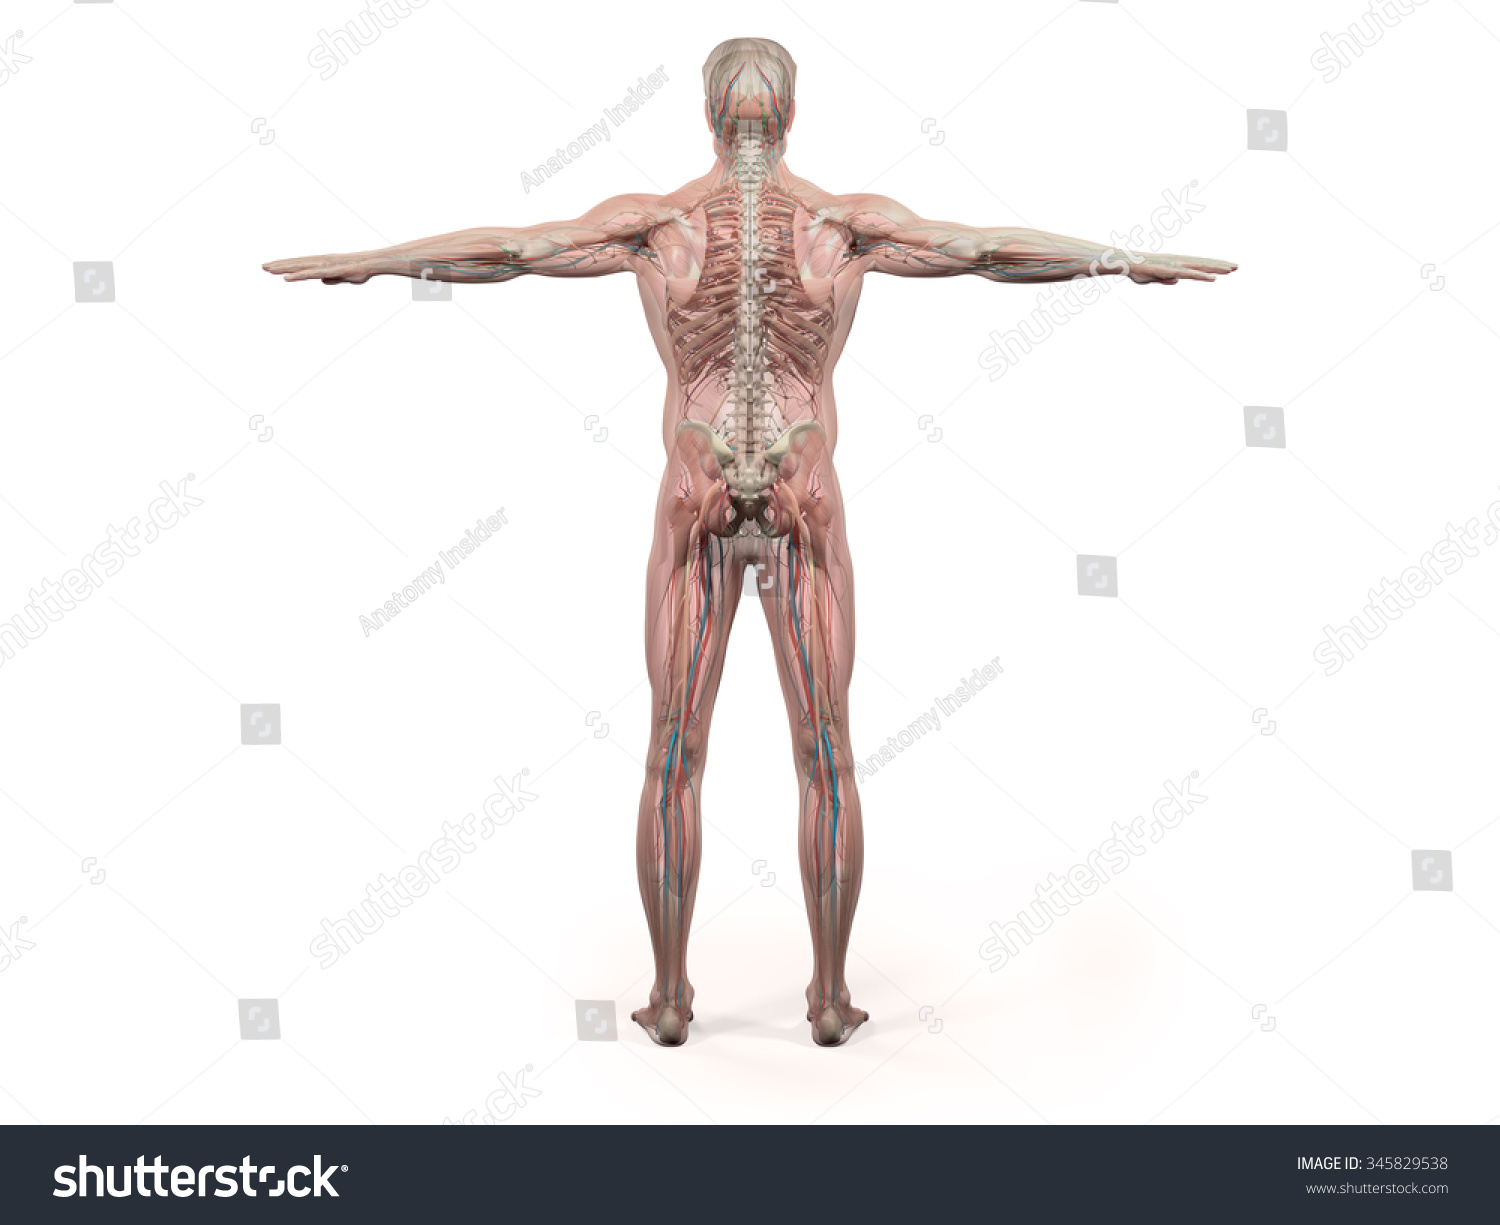 Human Anatomy Showing Back Full Body Stock Illustration 345829538 ...